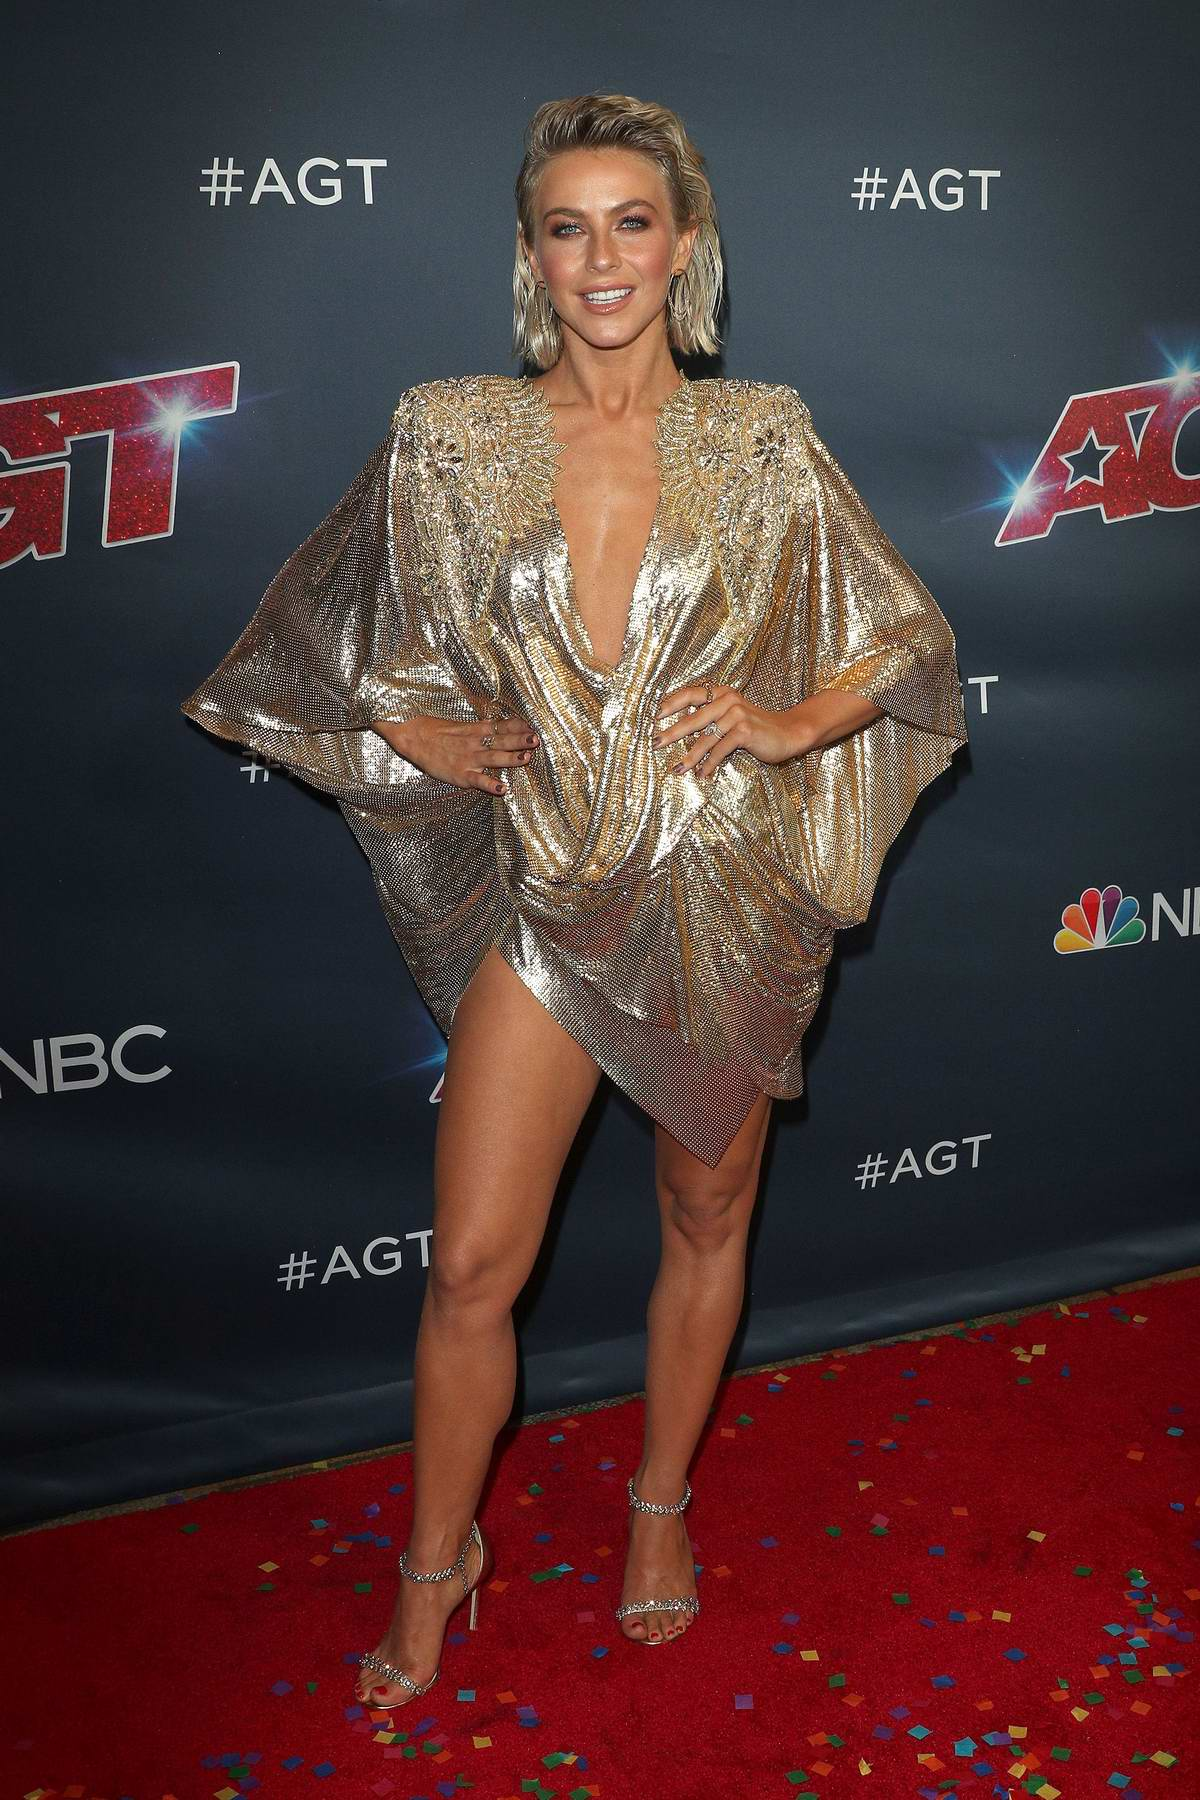 Julianne Hough attends 'America's Got Talent' Season 14 Finale at Dolby Theater in Hollywood, California